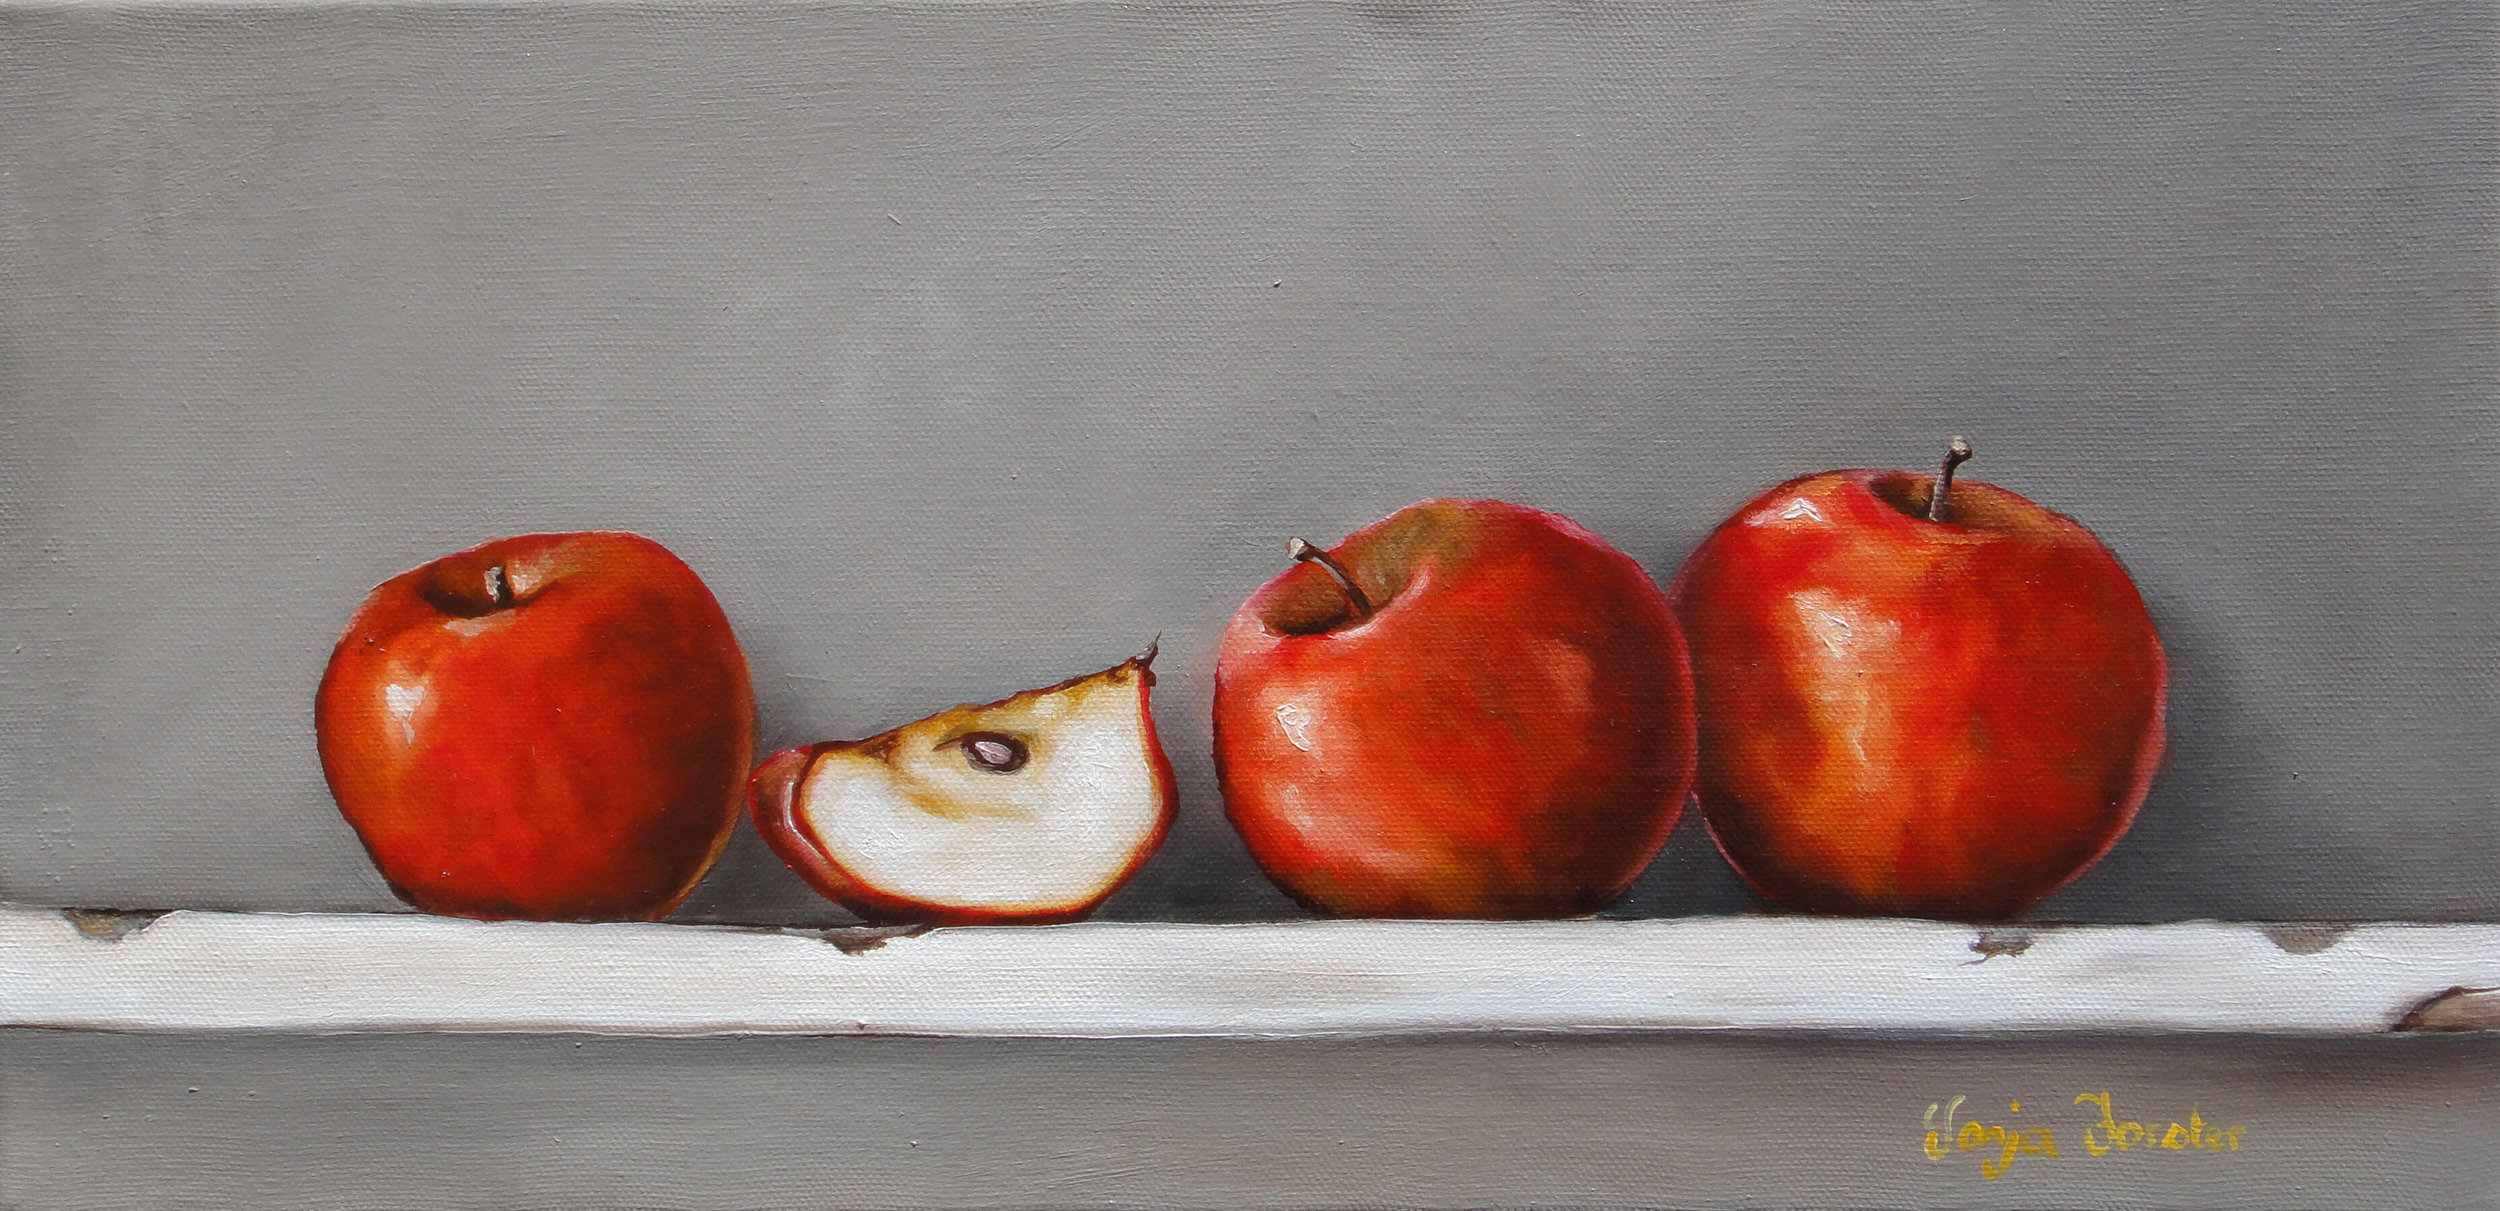 Sonja Forster Art - Another Apple per Day